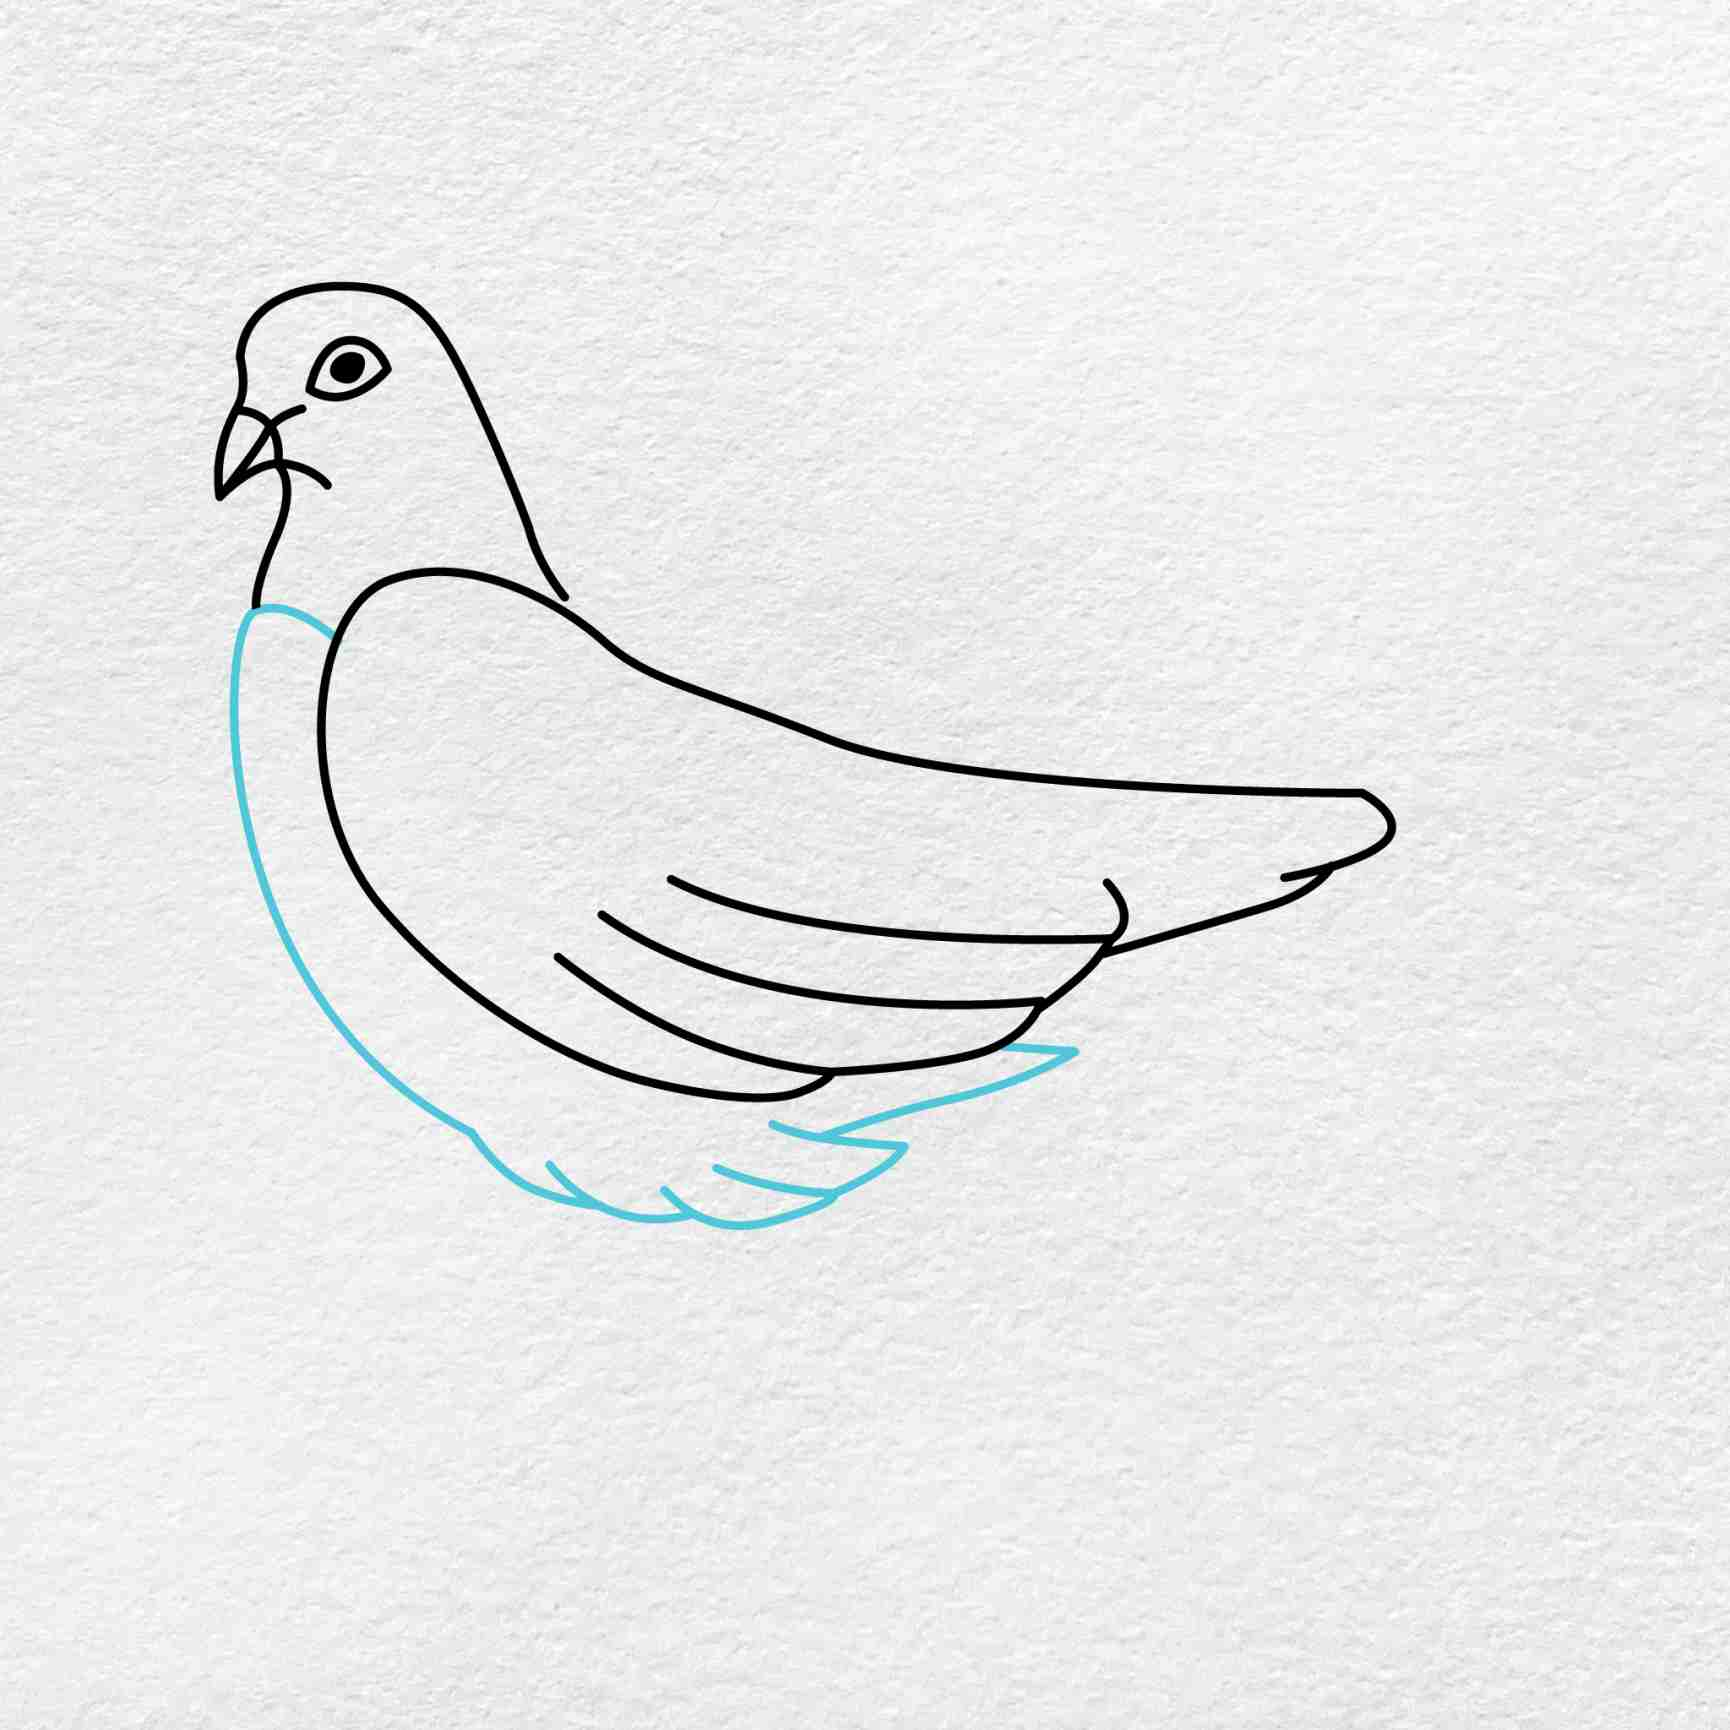 Dove Drawing: Step 3